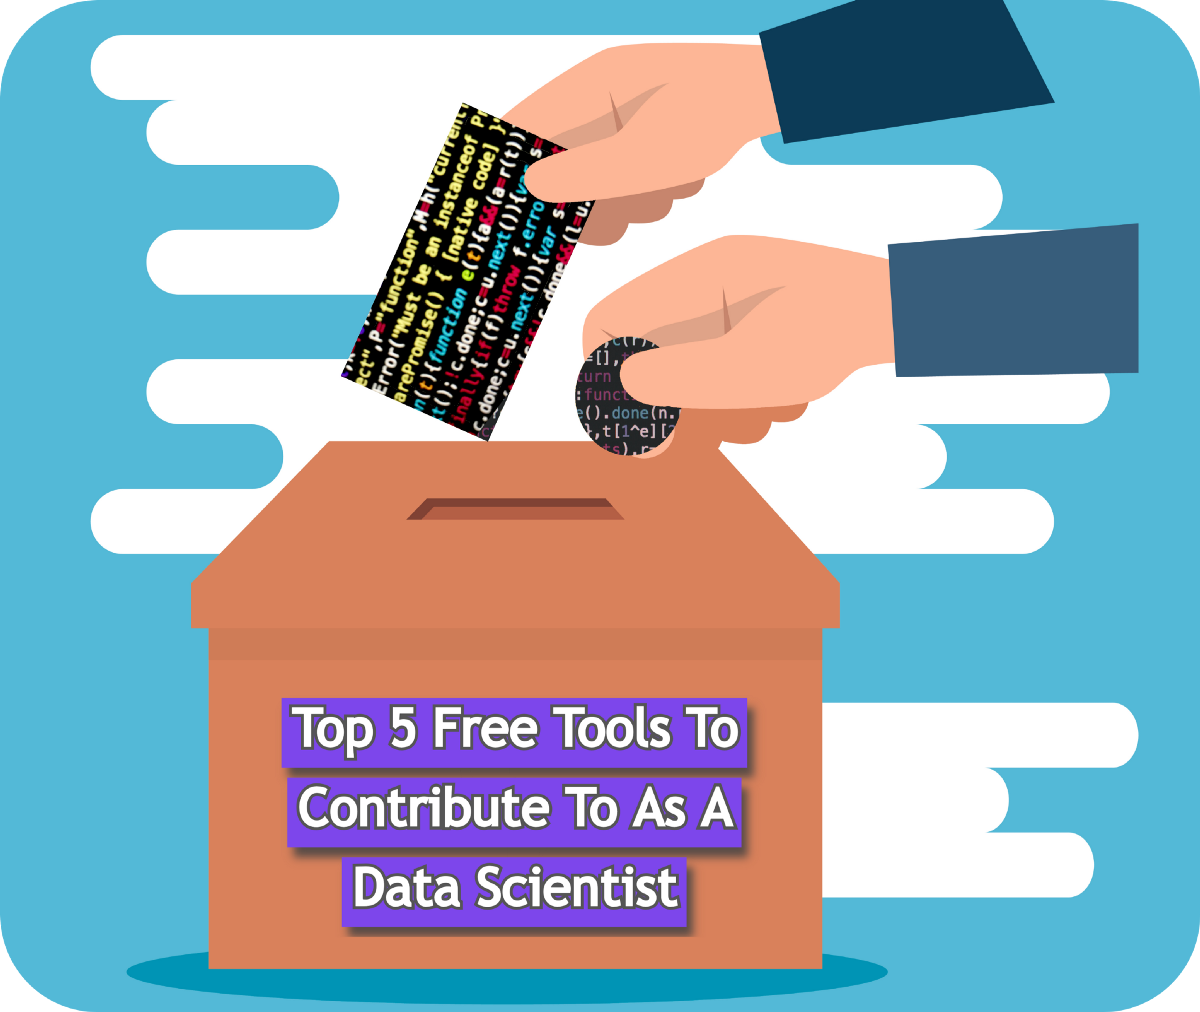 Top 5 Free Tools To Contribute To As A Data Scientist